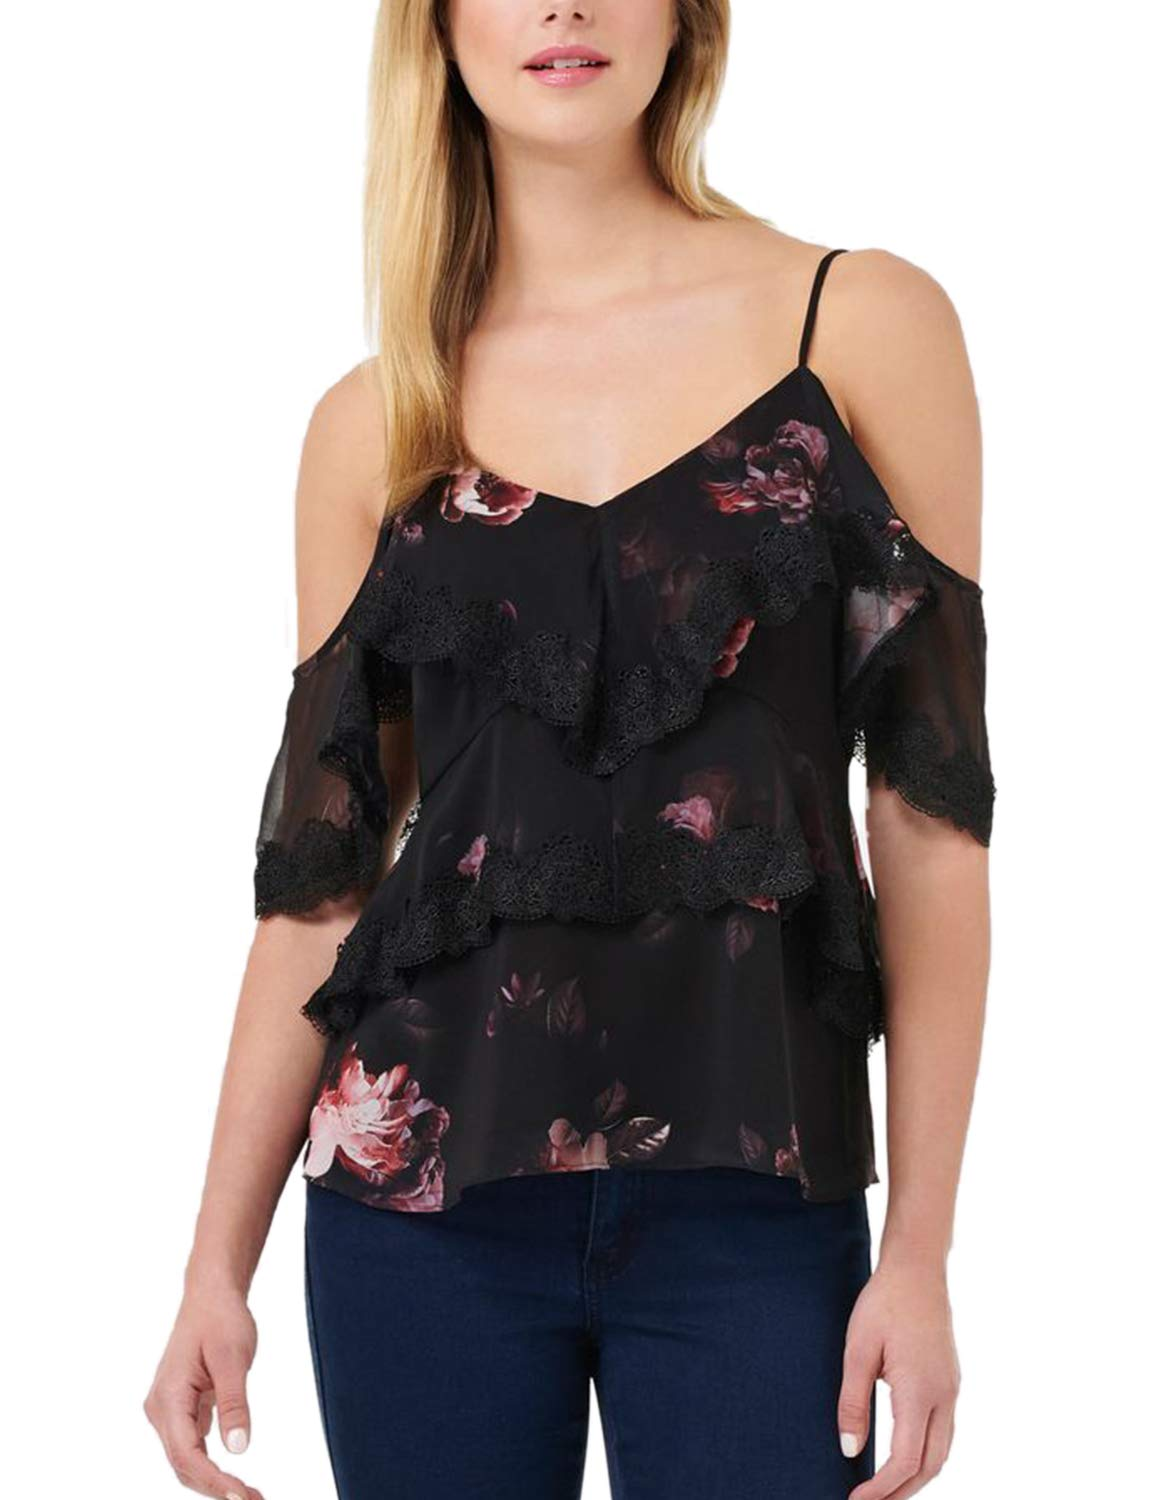 Blooming Jelly Women's Sexy Cold Shoulder Shirt V Neck Spaghetti Strap Floral Top Black